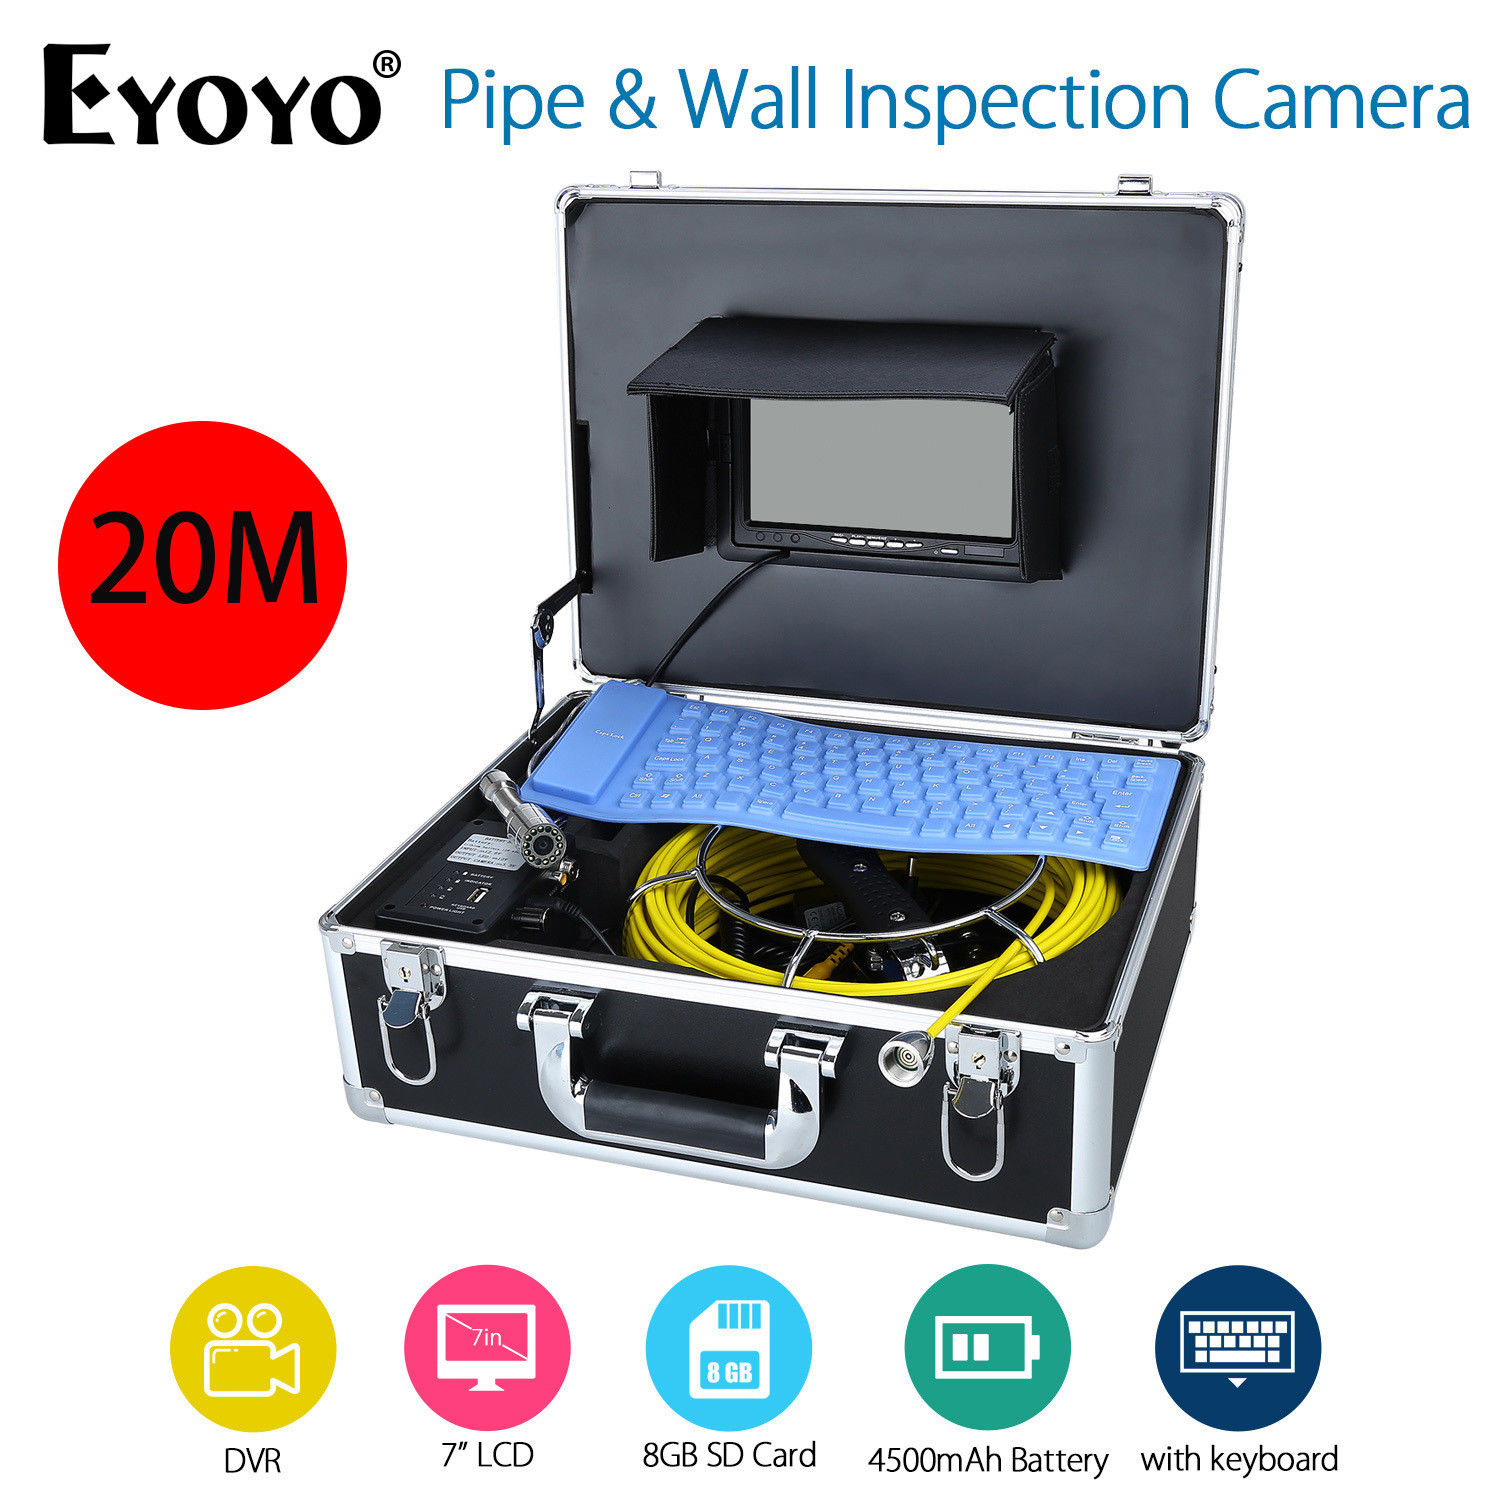 EYOYO 7 LCD Screen 20M Sewer Drain Camera Pipe Wall Inspection Endoscope w/Keyboard DVR Recording 1000TVL 4500mAh Battery 8GB eyoyo 7 lcd screen 20m 800 480 1000tvl 4500mah sewer drain camera pipe wall inspection endoscope w keyboard dvr recording 8gb